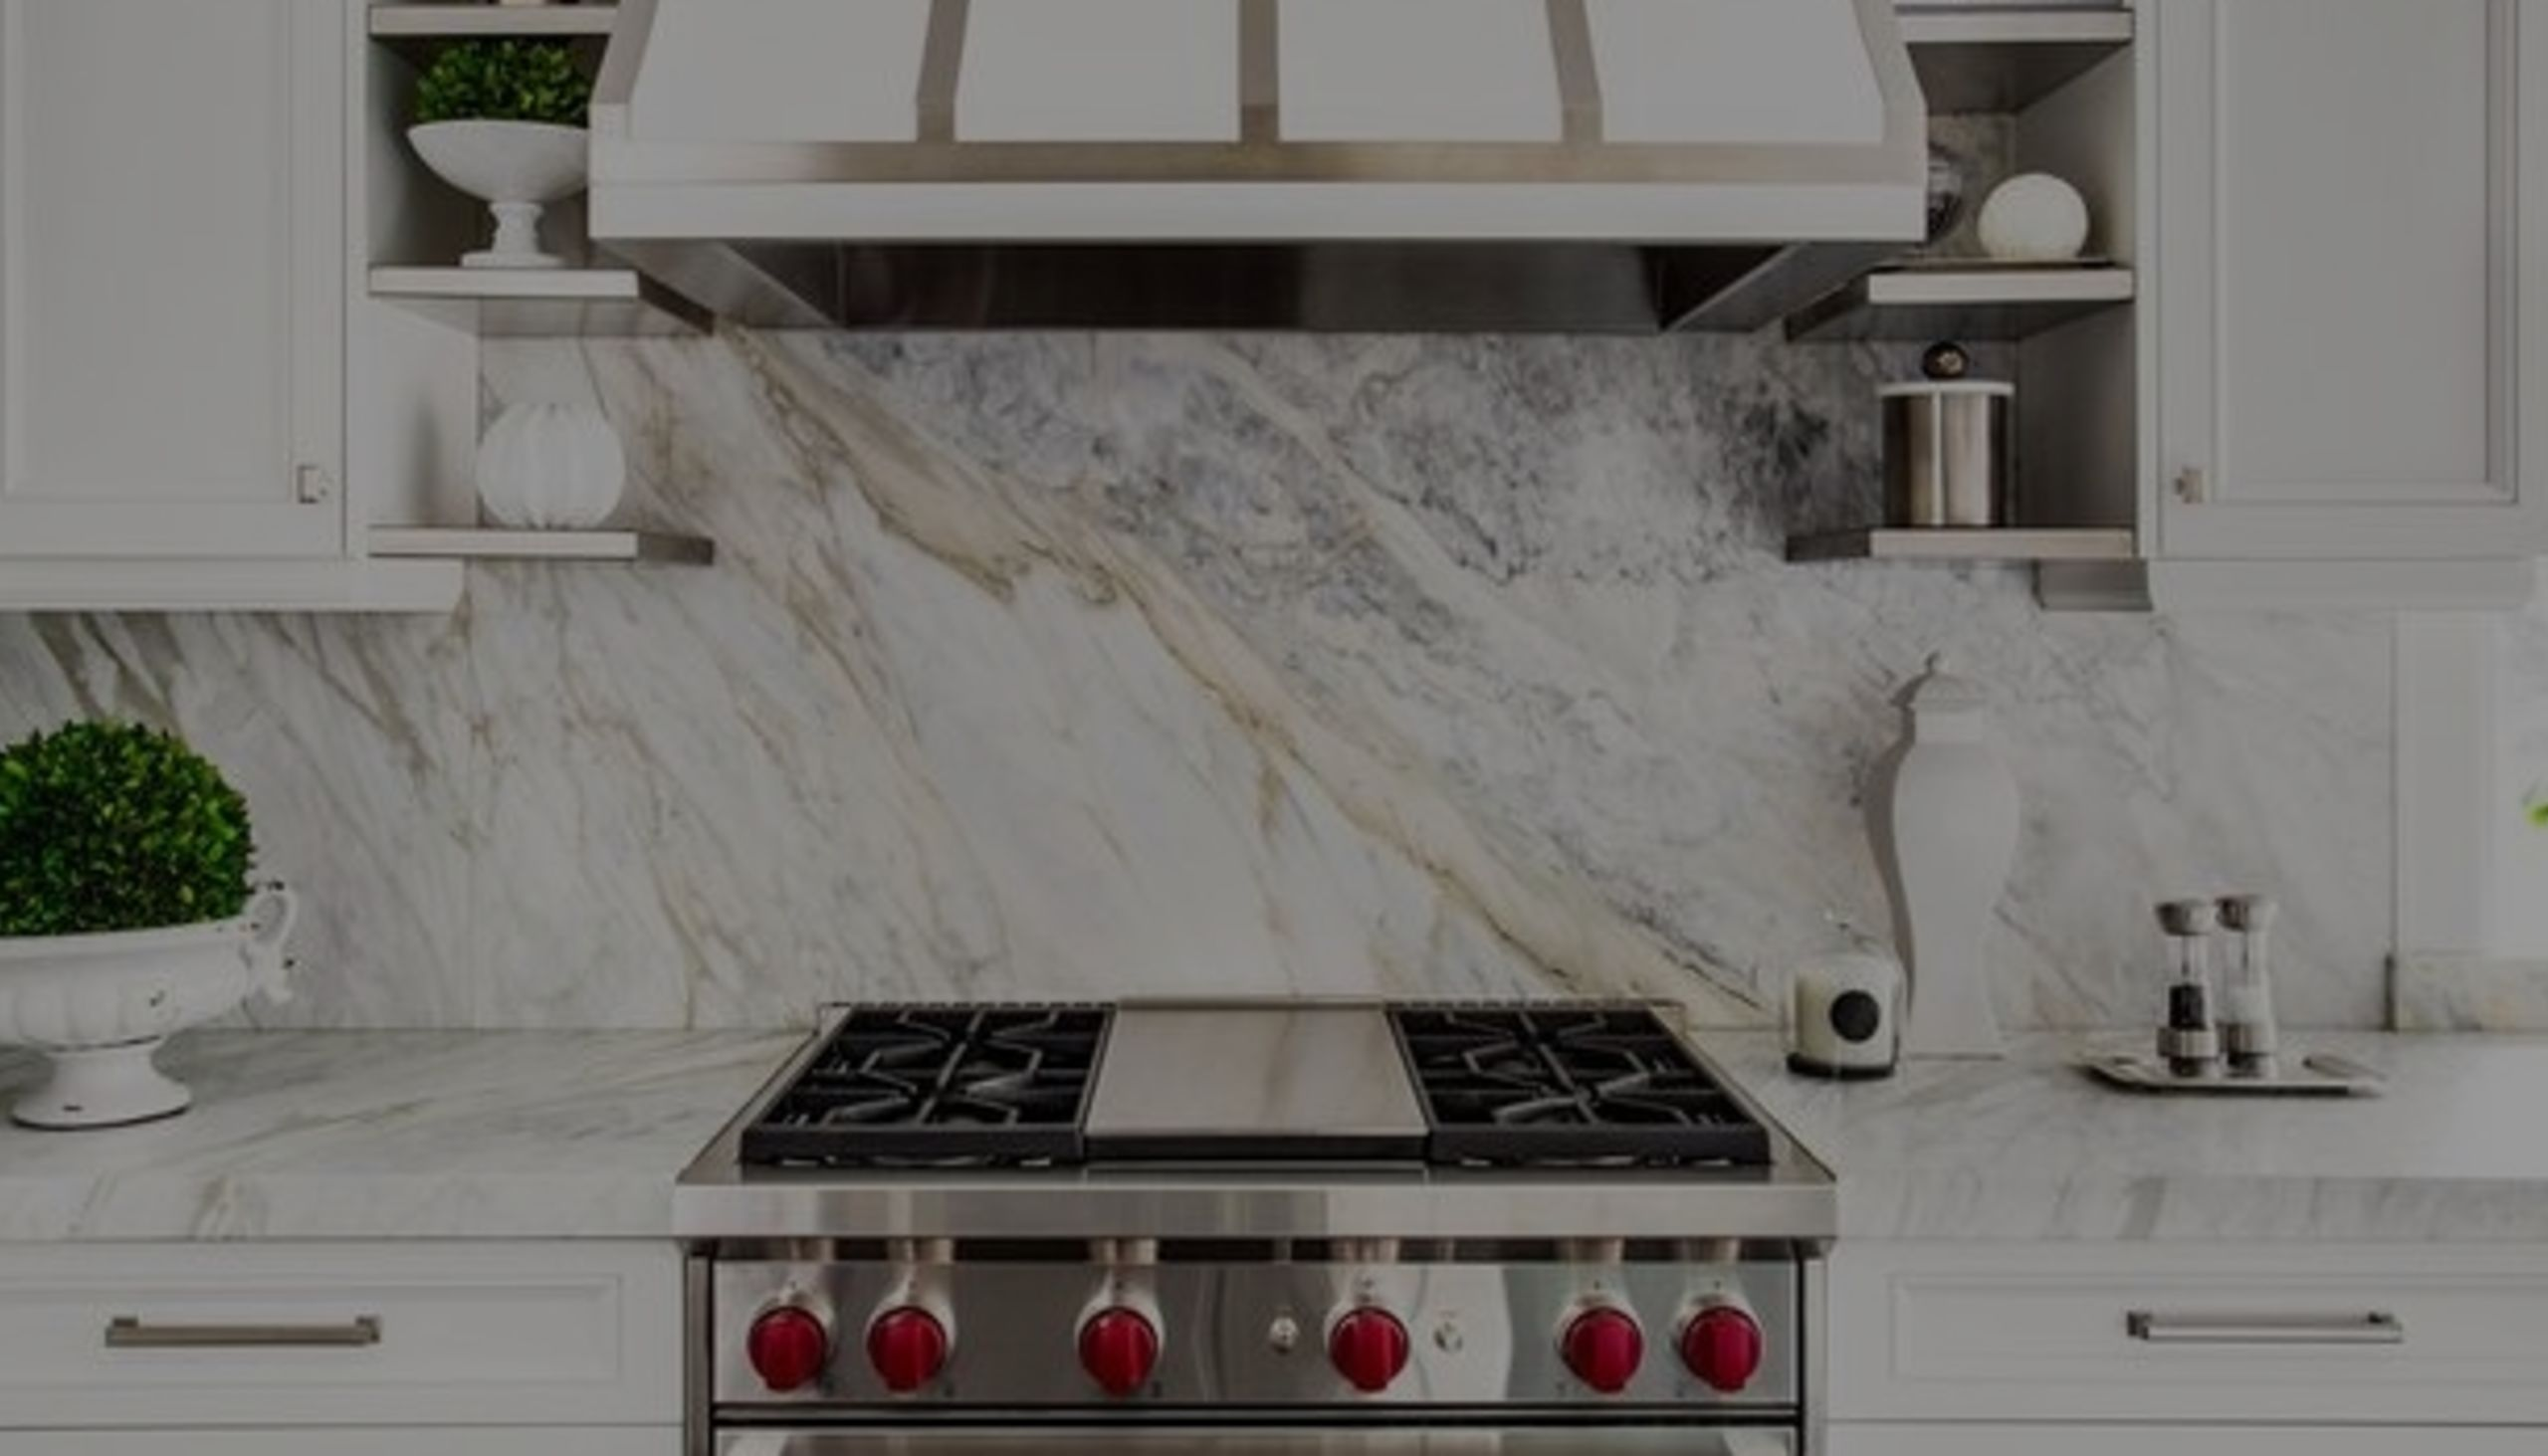 9 Bold and Beautiful Backsplash Designs That Will Transform Your Kitchen